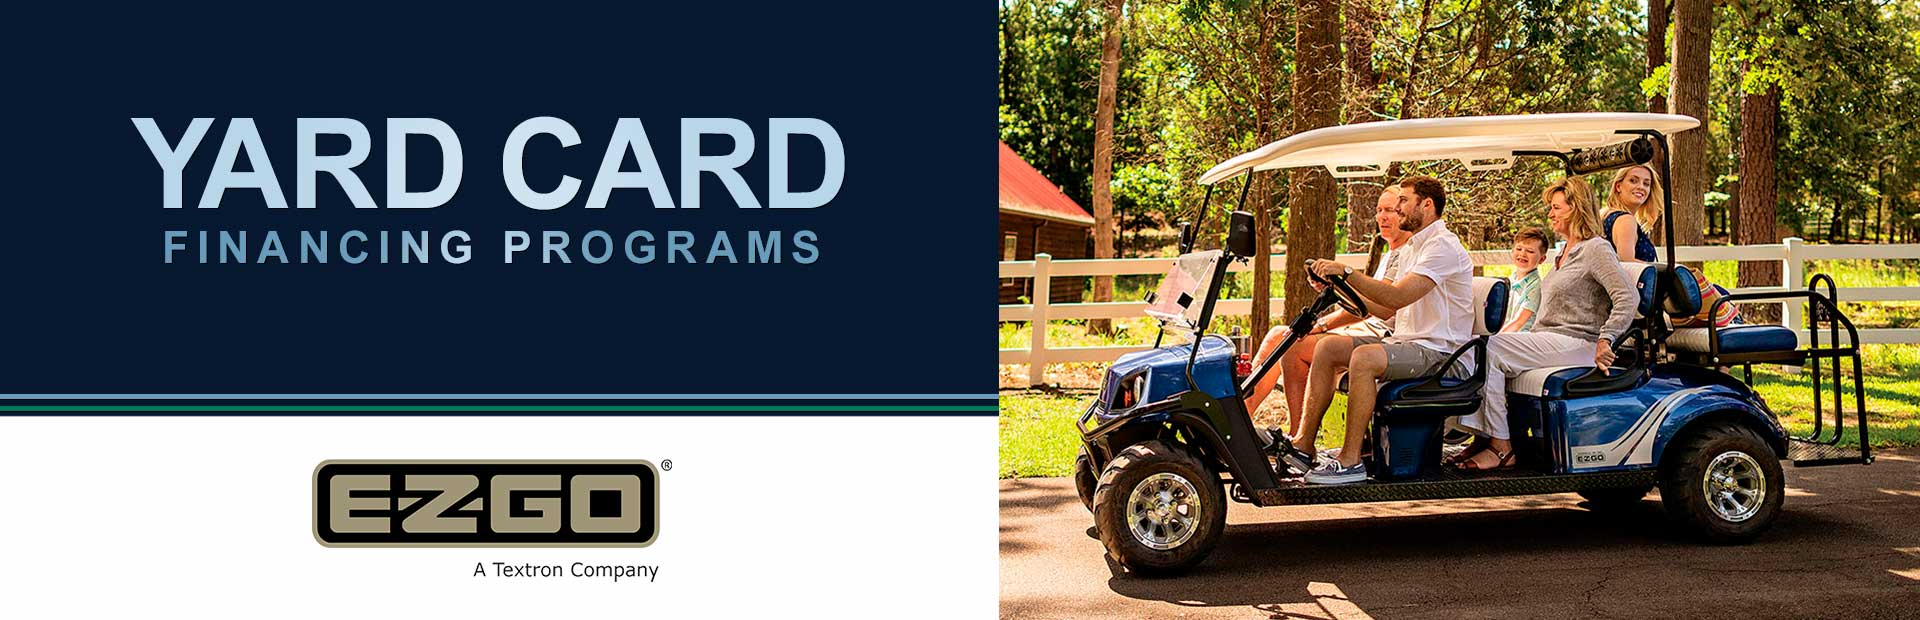 E-Z-GO: EZ-GO – Yard Card Financing Programs